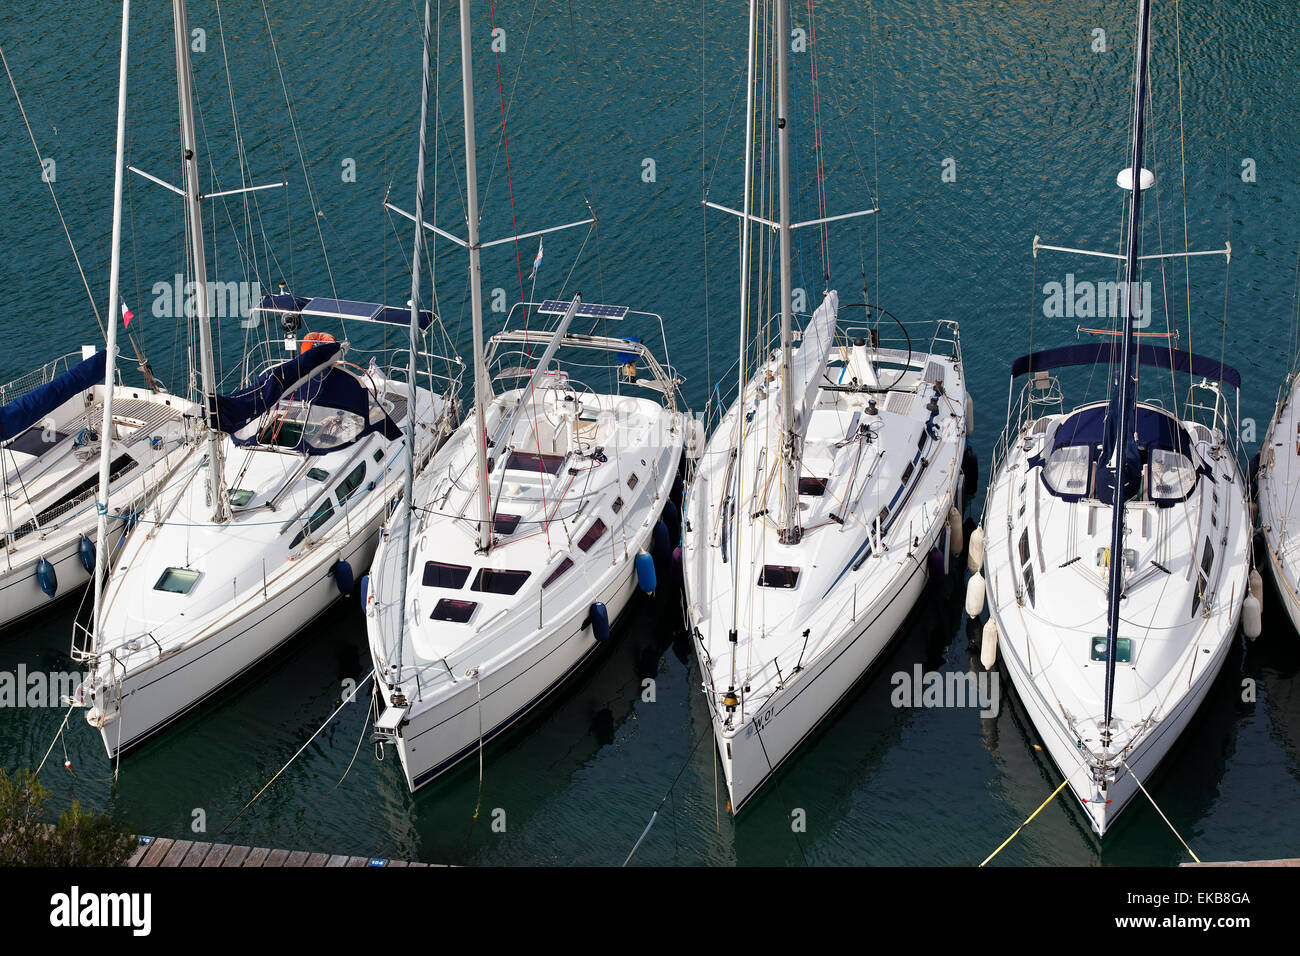 boats in harbor - Stock Image